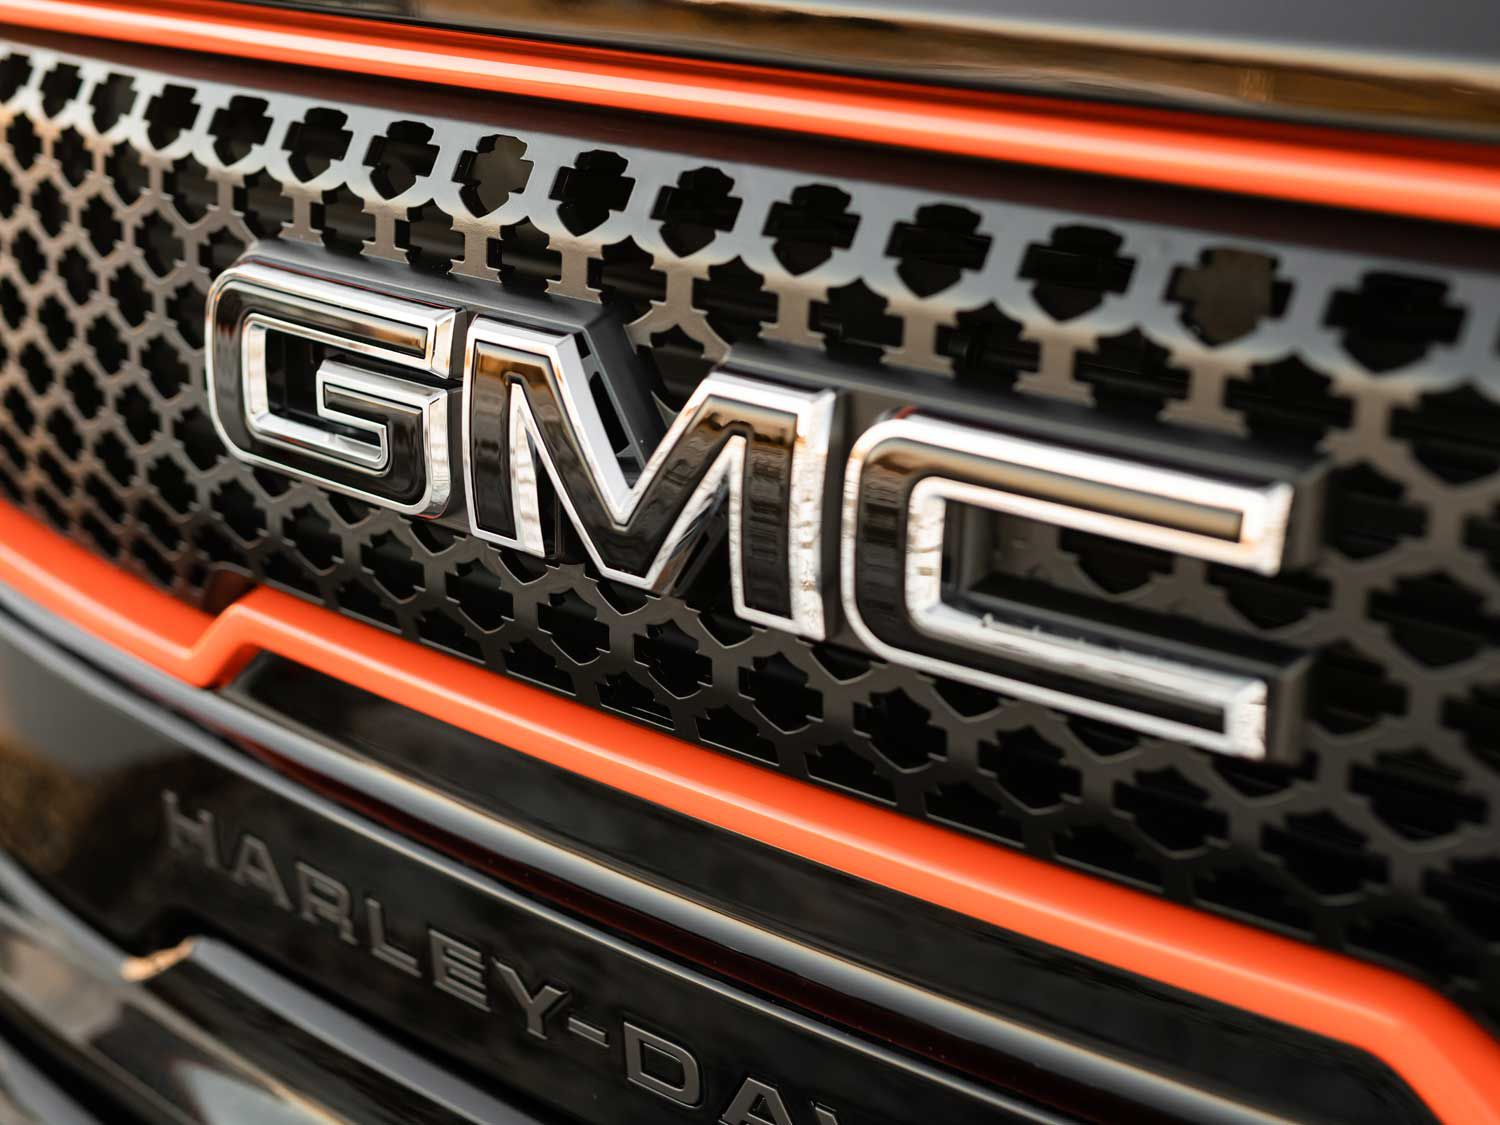 The custom design Harley-Davidson grille features the Bar & Shield logos symmetrically cut out of the grille insert.